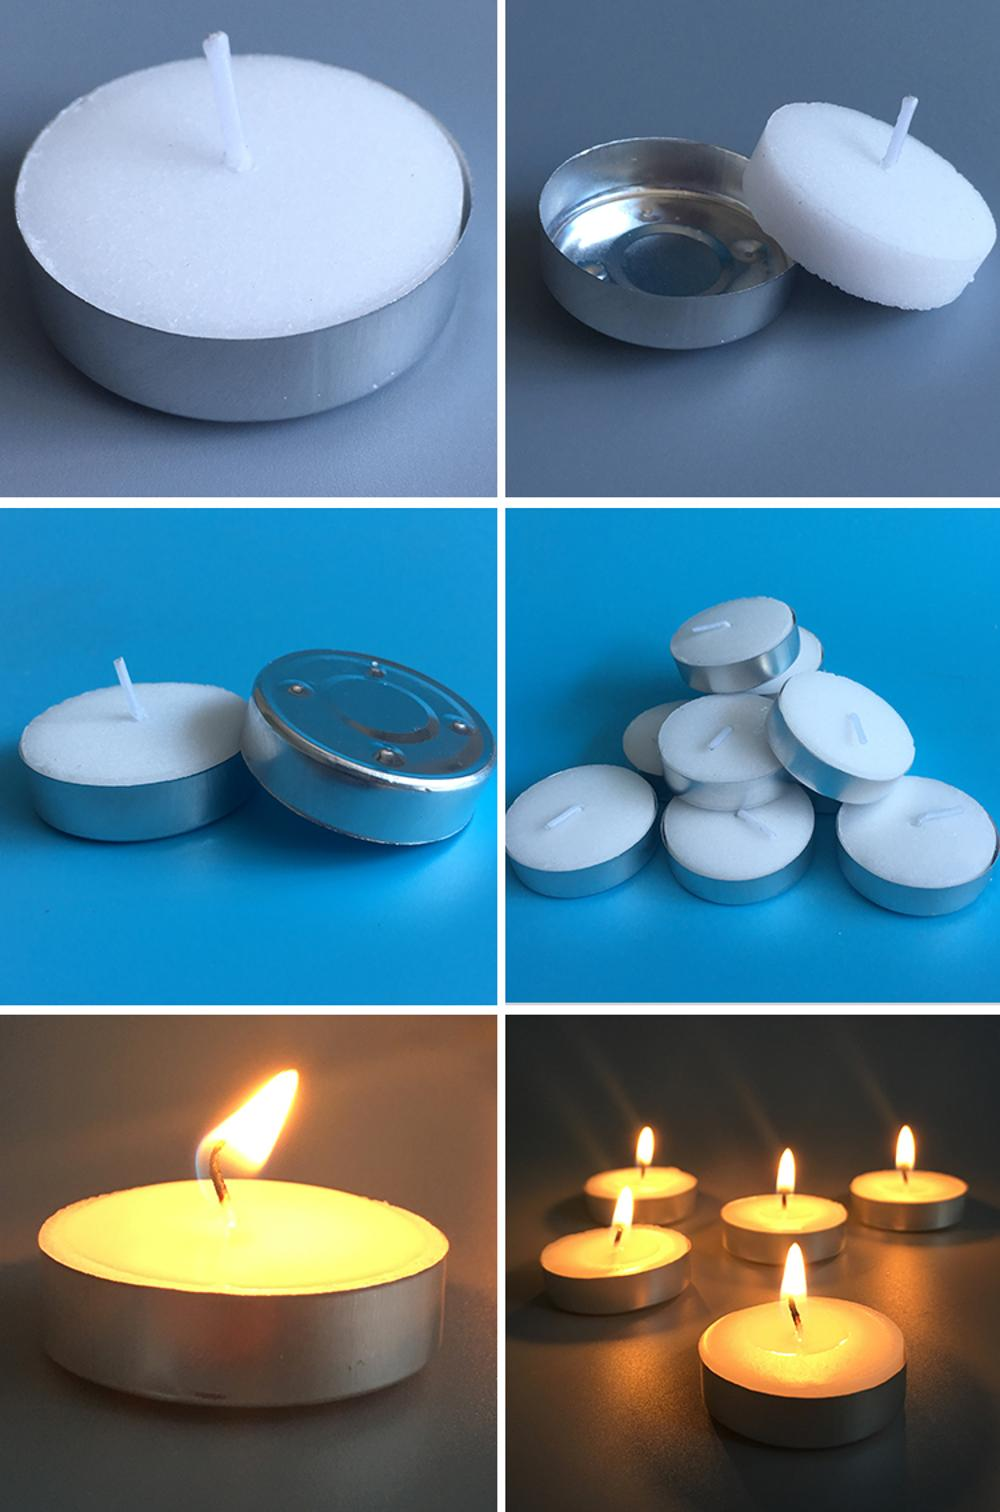 Unscented Tea light candles